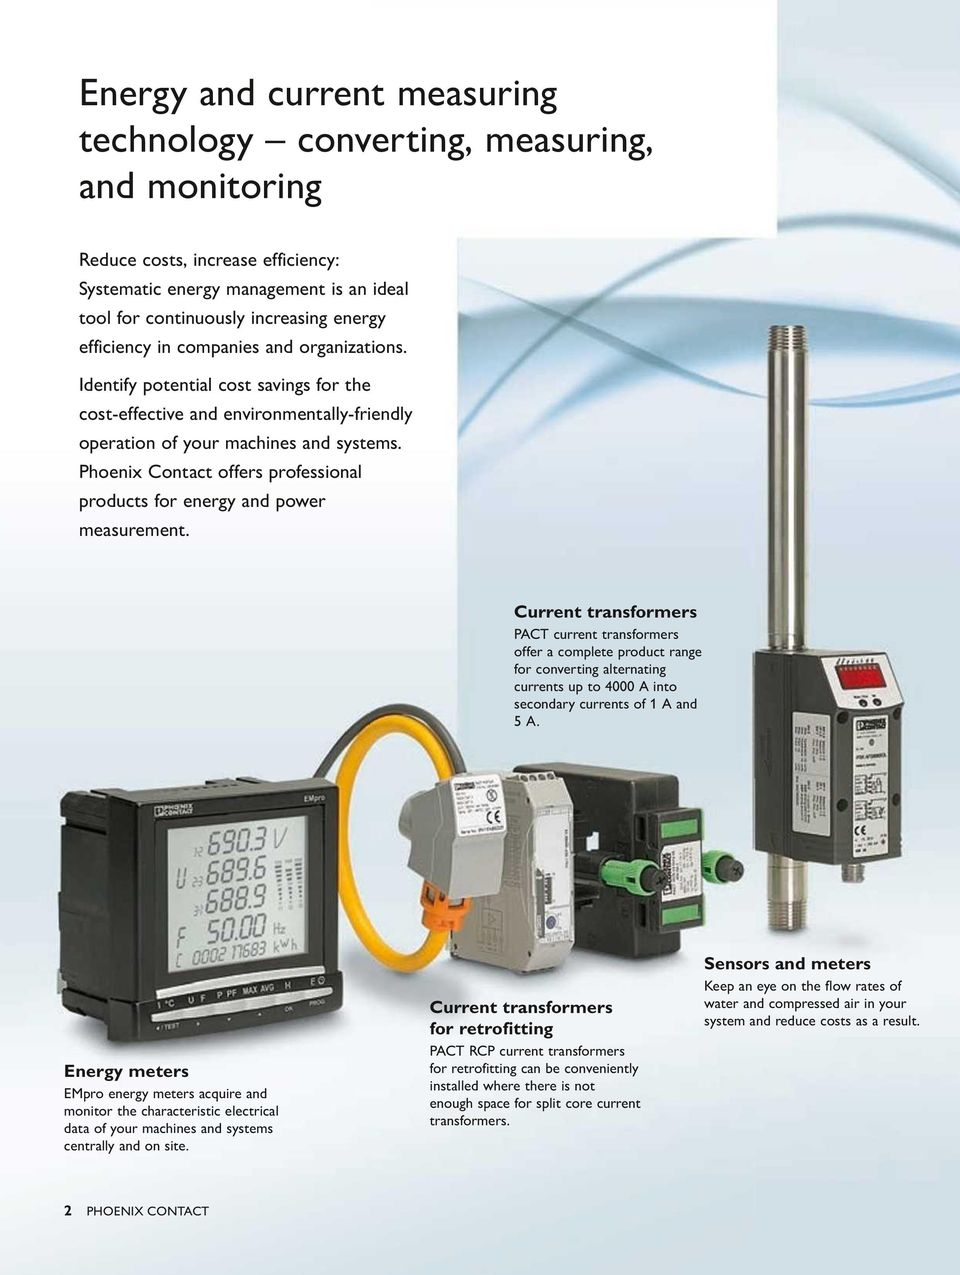 Phoenix Contact offers professional products for energy and power measurement.